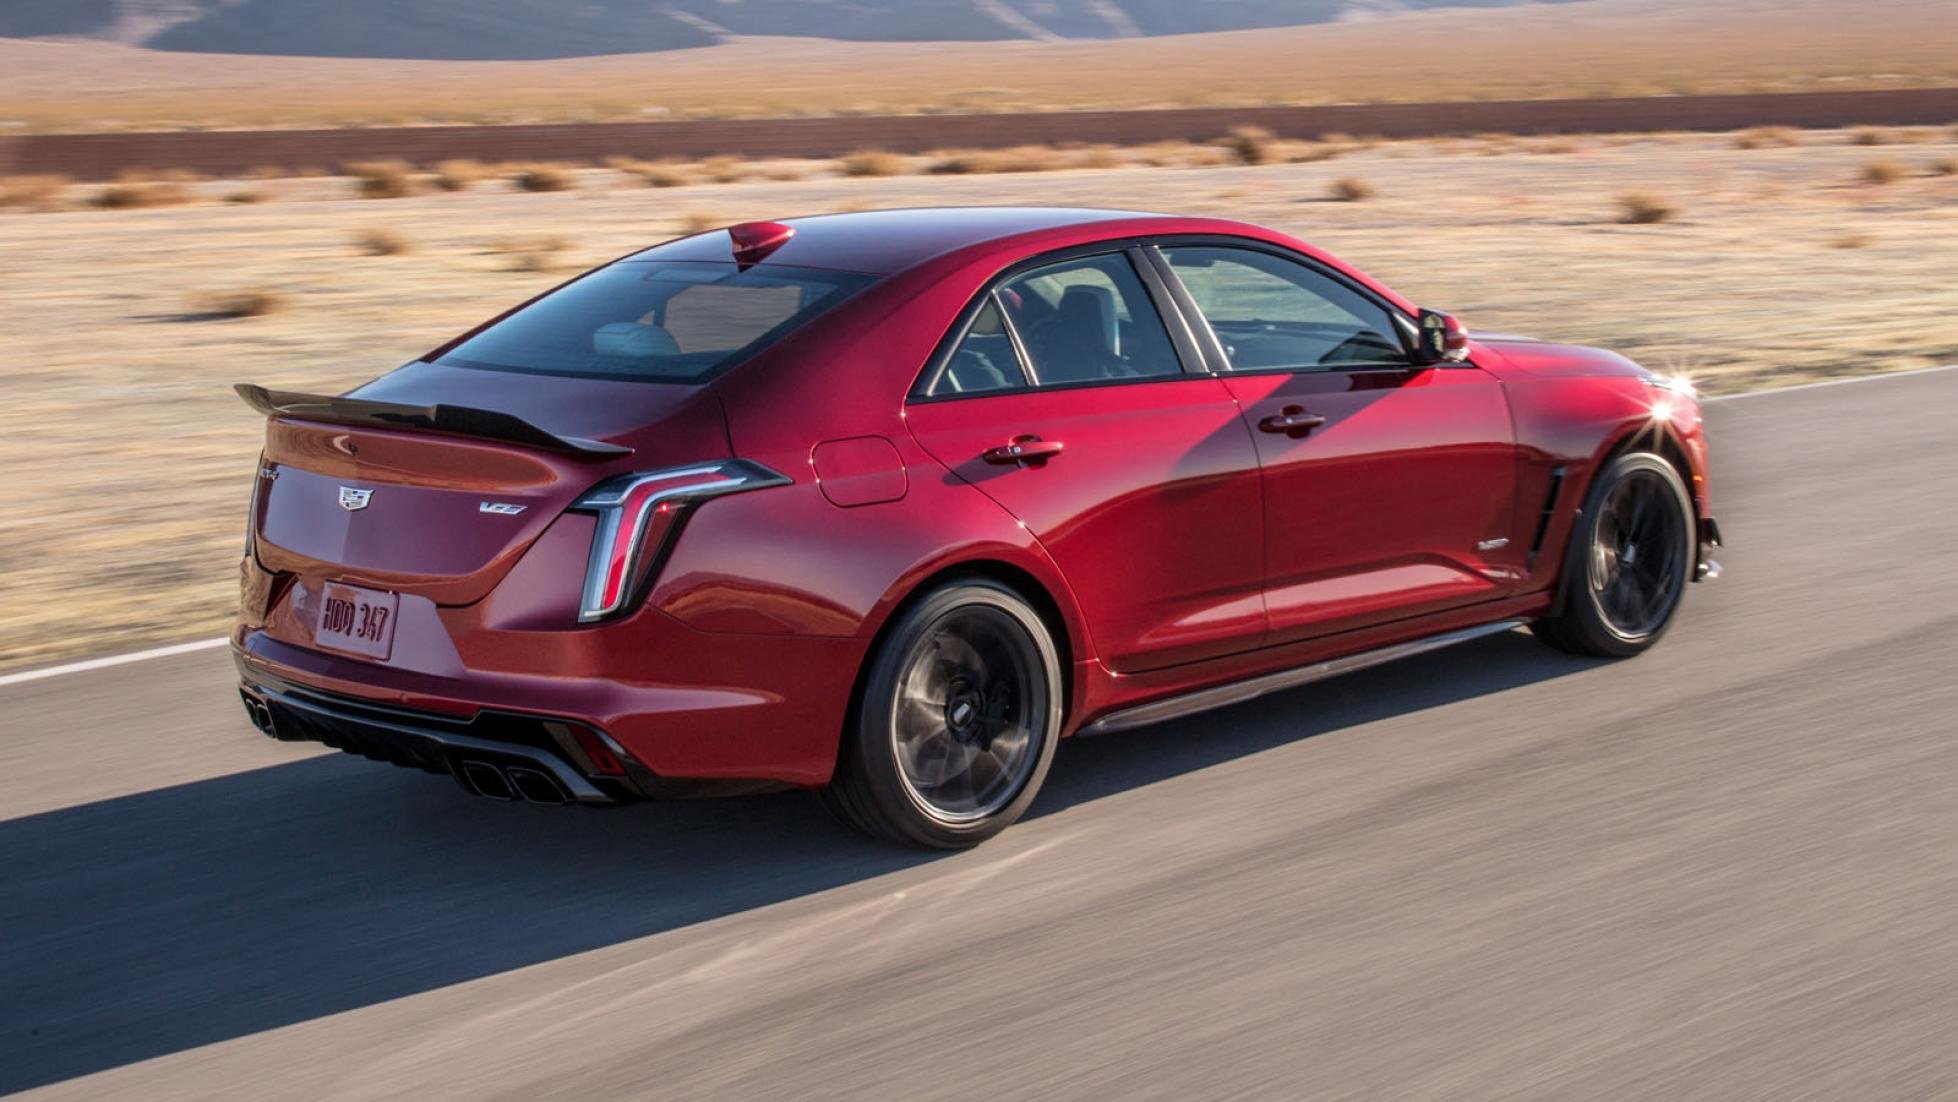 Cadillac CT4-V Blackwing (red) - On the road